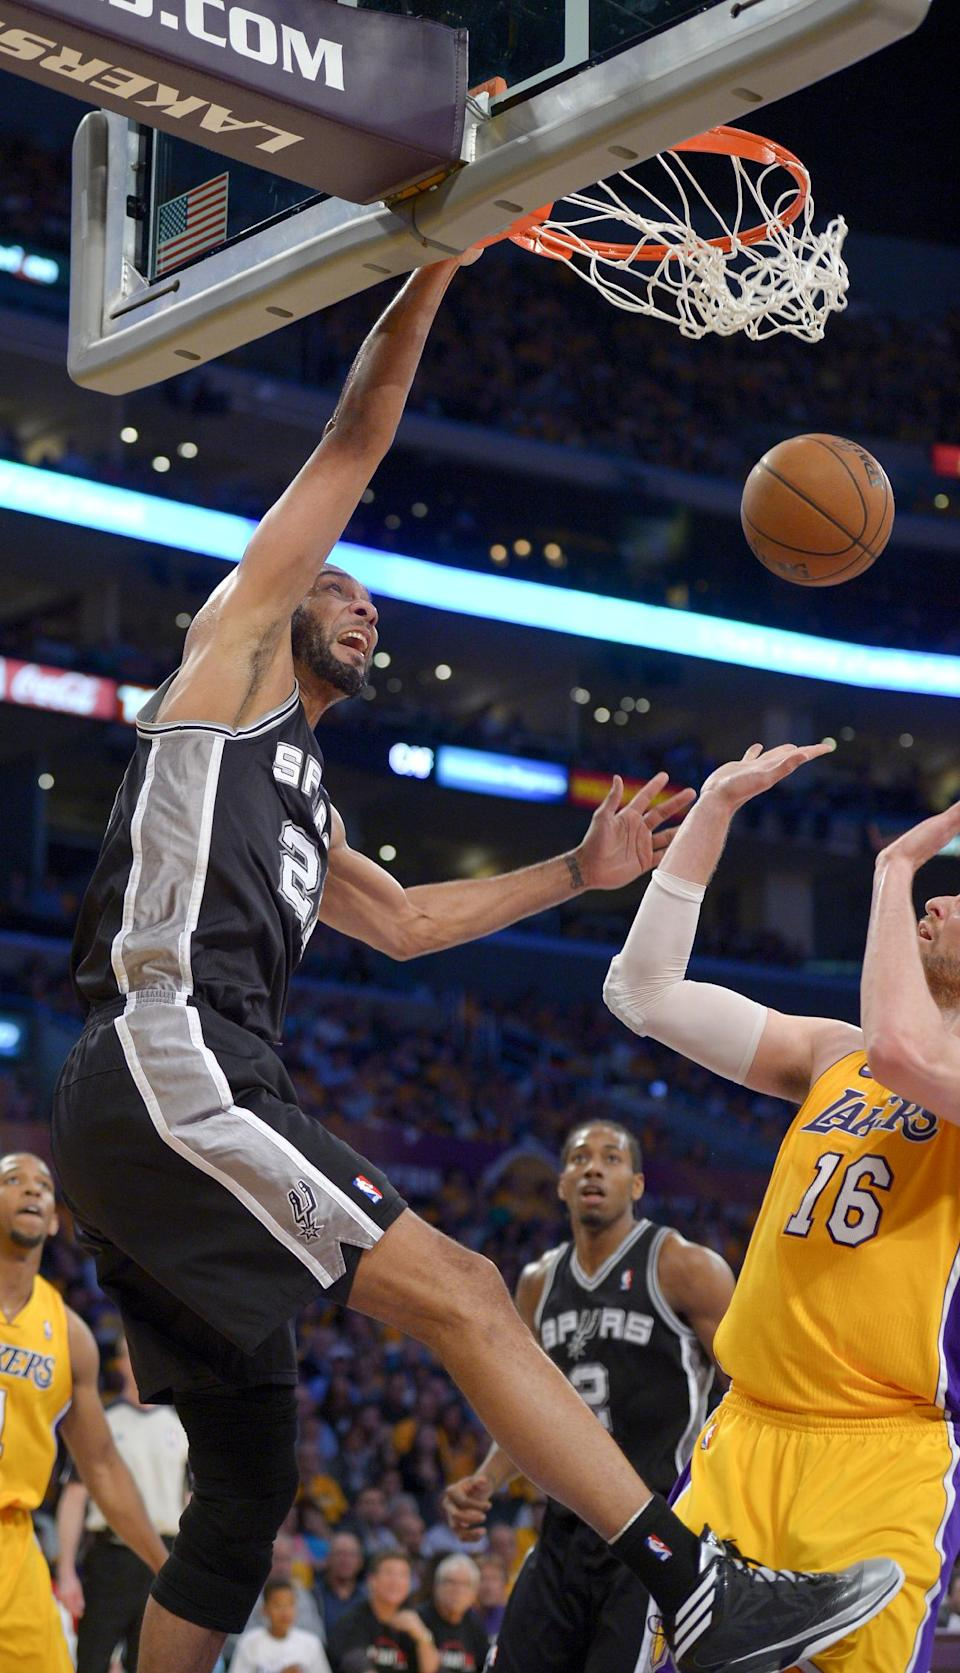 San Antonio Spurs forward Tim Duncan, left, dunks over Los Angeles Lakers forward Pau Gasol (16), of Spain, during the first half in Game 3 of a first-round NBA basketball playoff series on Friday, April 26, 2013, in Los Angeles. (AP Photo/Mark J. Terrill)